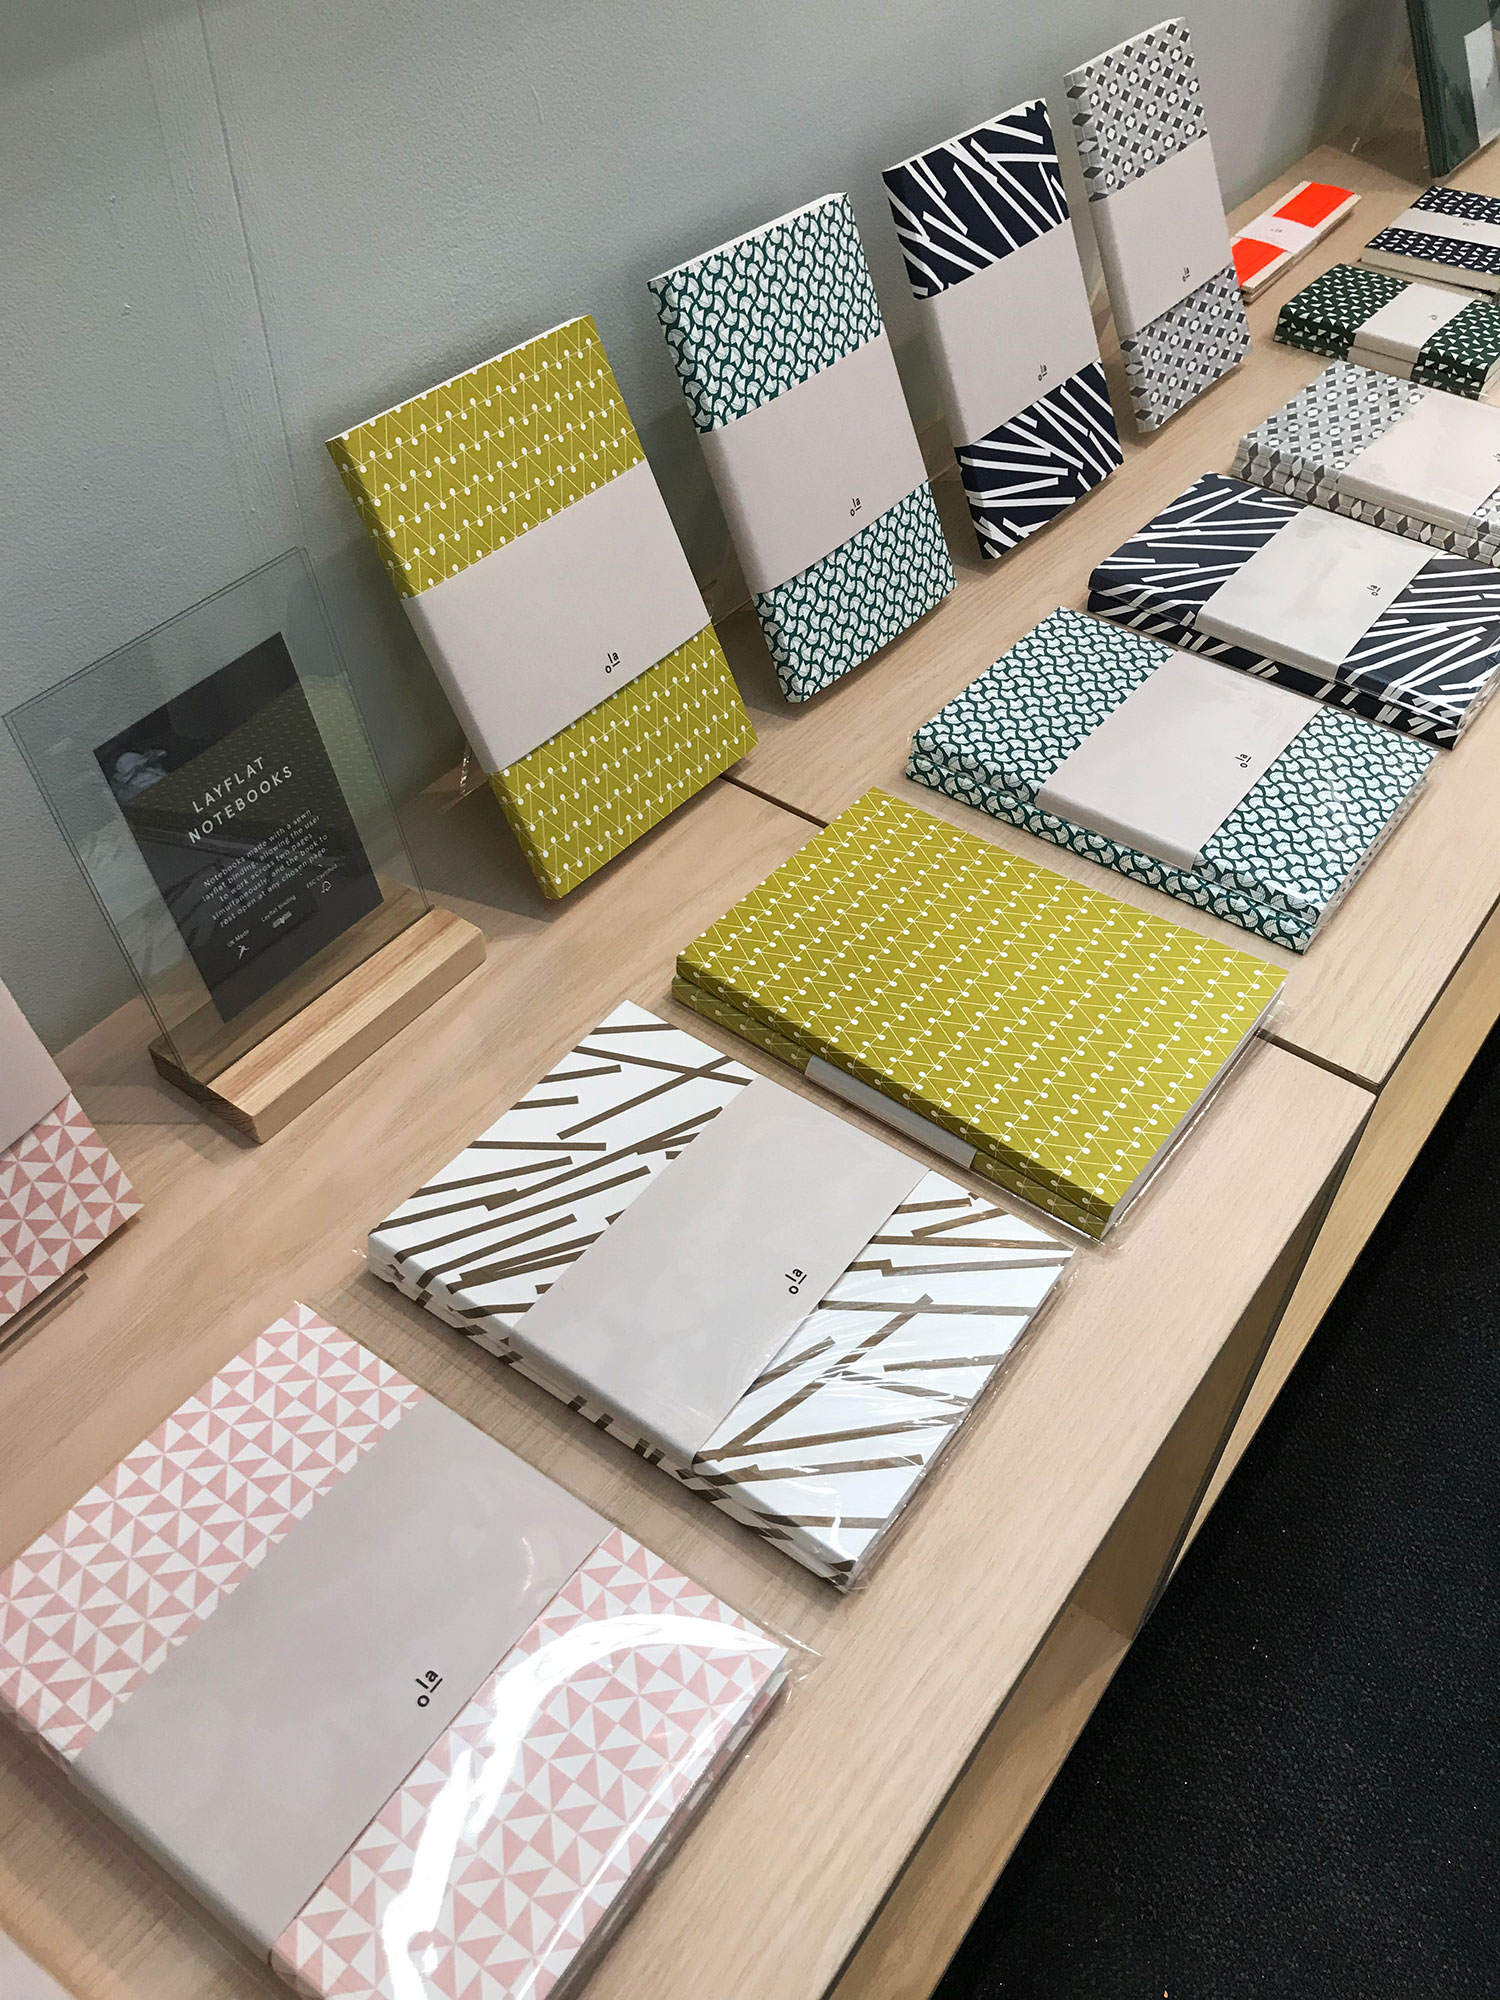 #lss19 ova notebooks